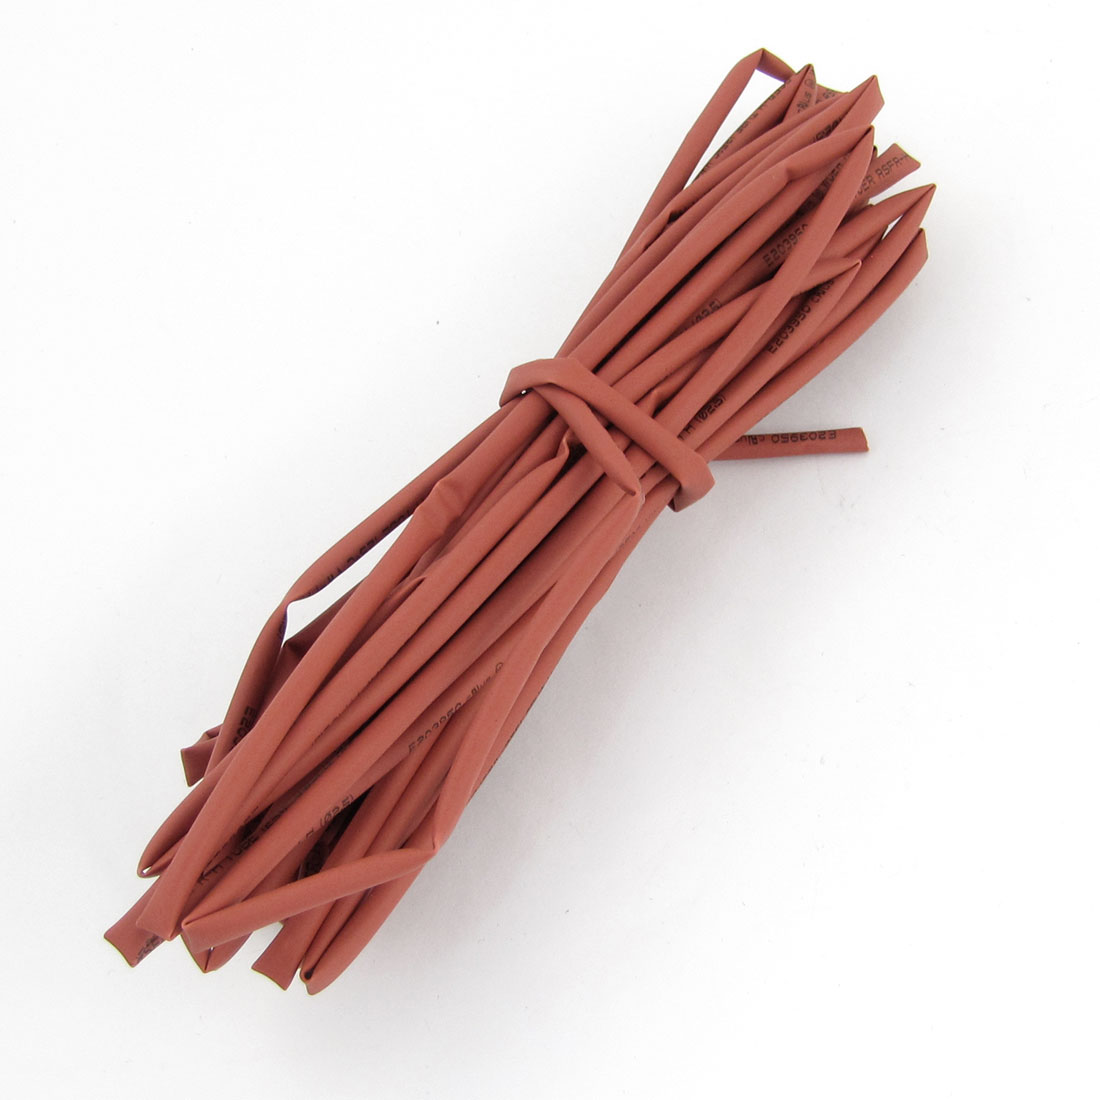 Unique Bargains Car Stereo DIY 2.5mm Diameter Polyolefin Heat-shrink Tube Red 5M 16.4Ft